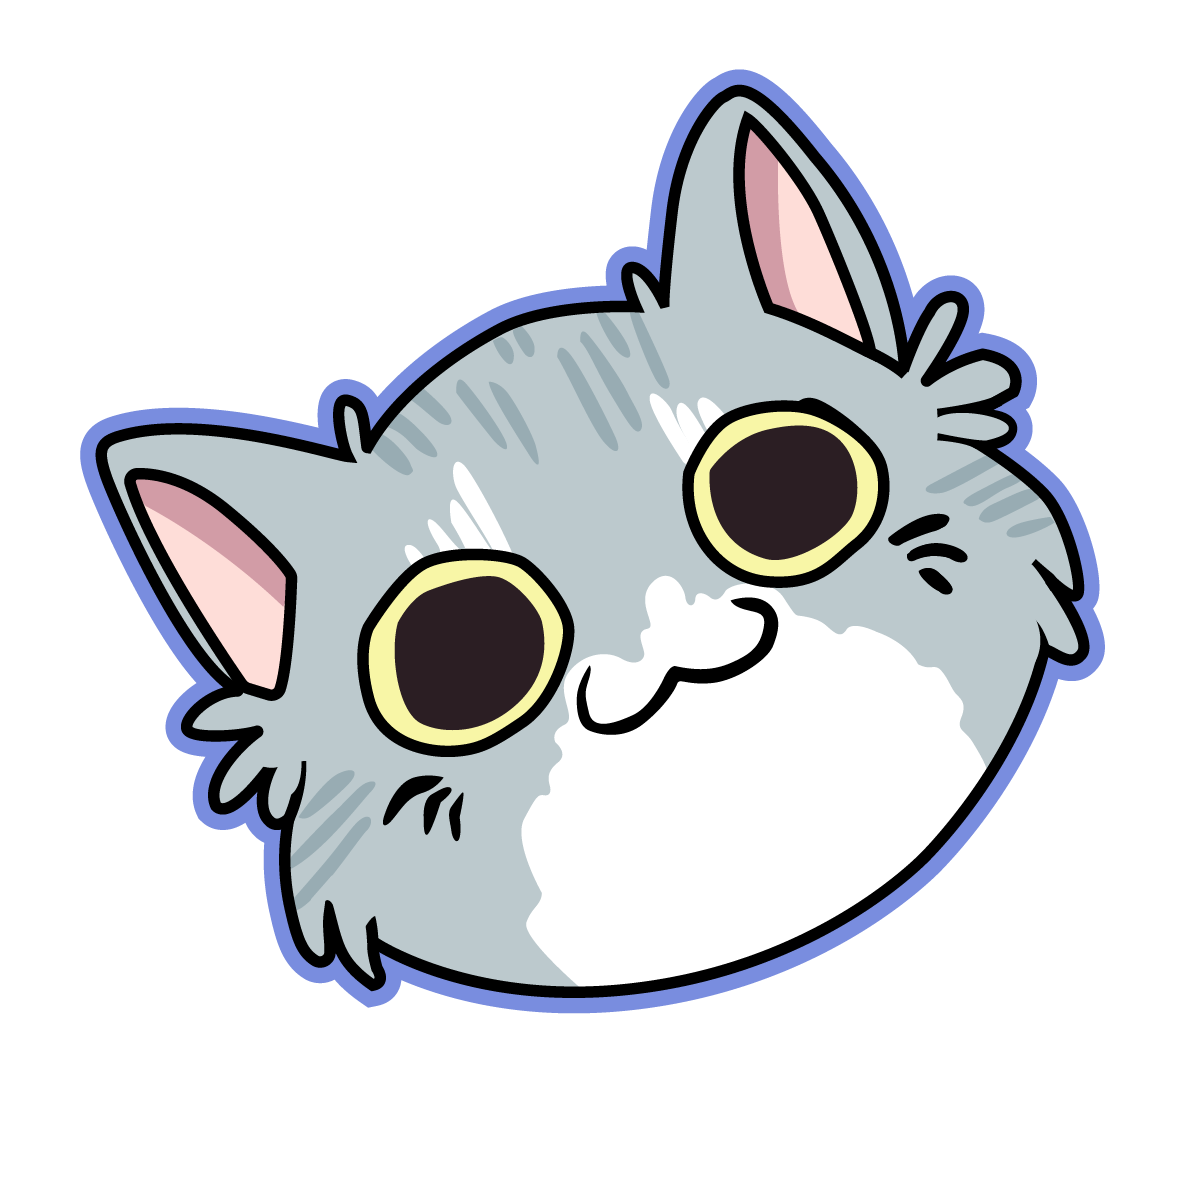 Cat curled up clipart banner royalty free stock Mimi | Game Grumps Wiki | FANDOM powered by Wikia banner royalty free stock